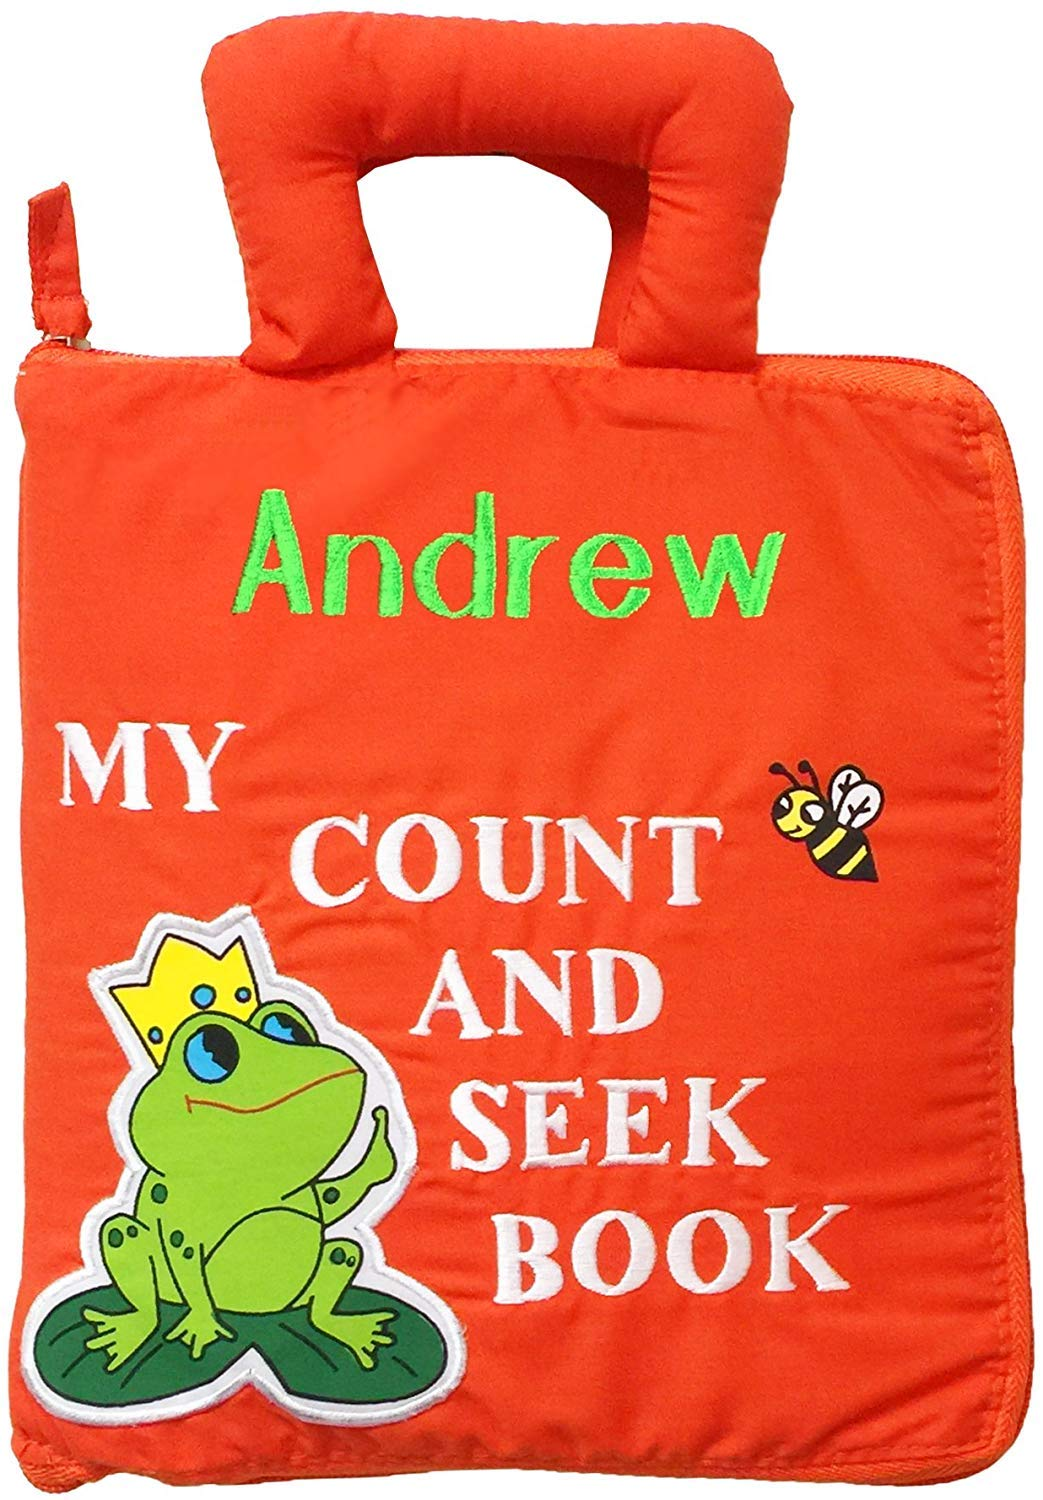 Pockets of Learning Personalized Child's First Counting Quiet Book, Activity Busy Book for Toddlers and Children, Count and Seek